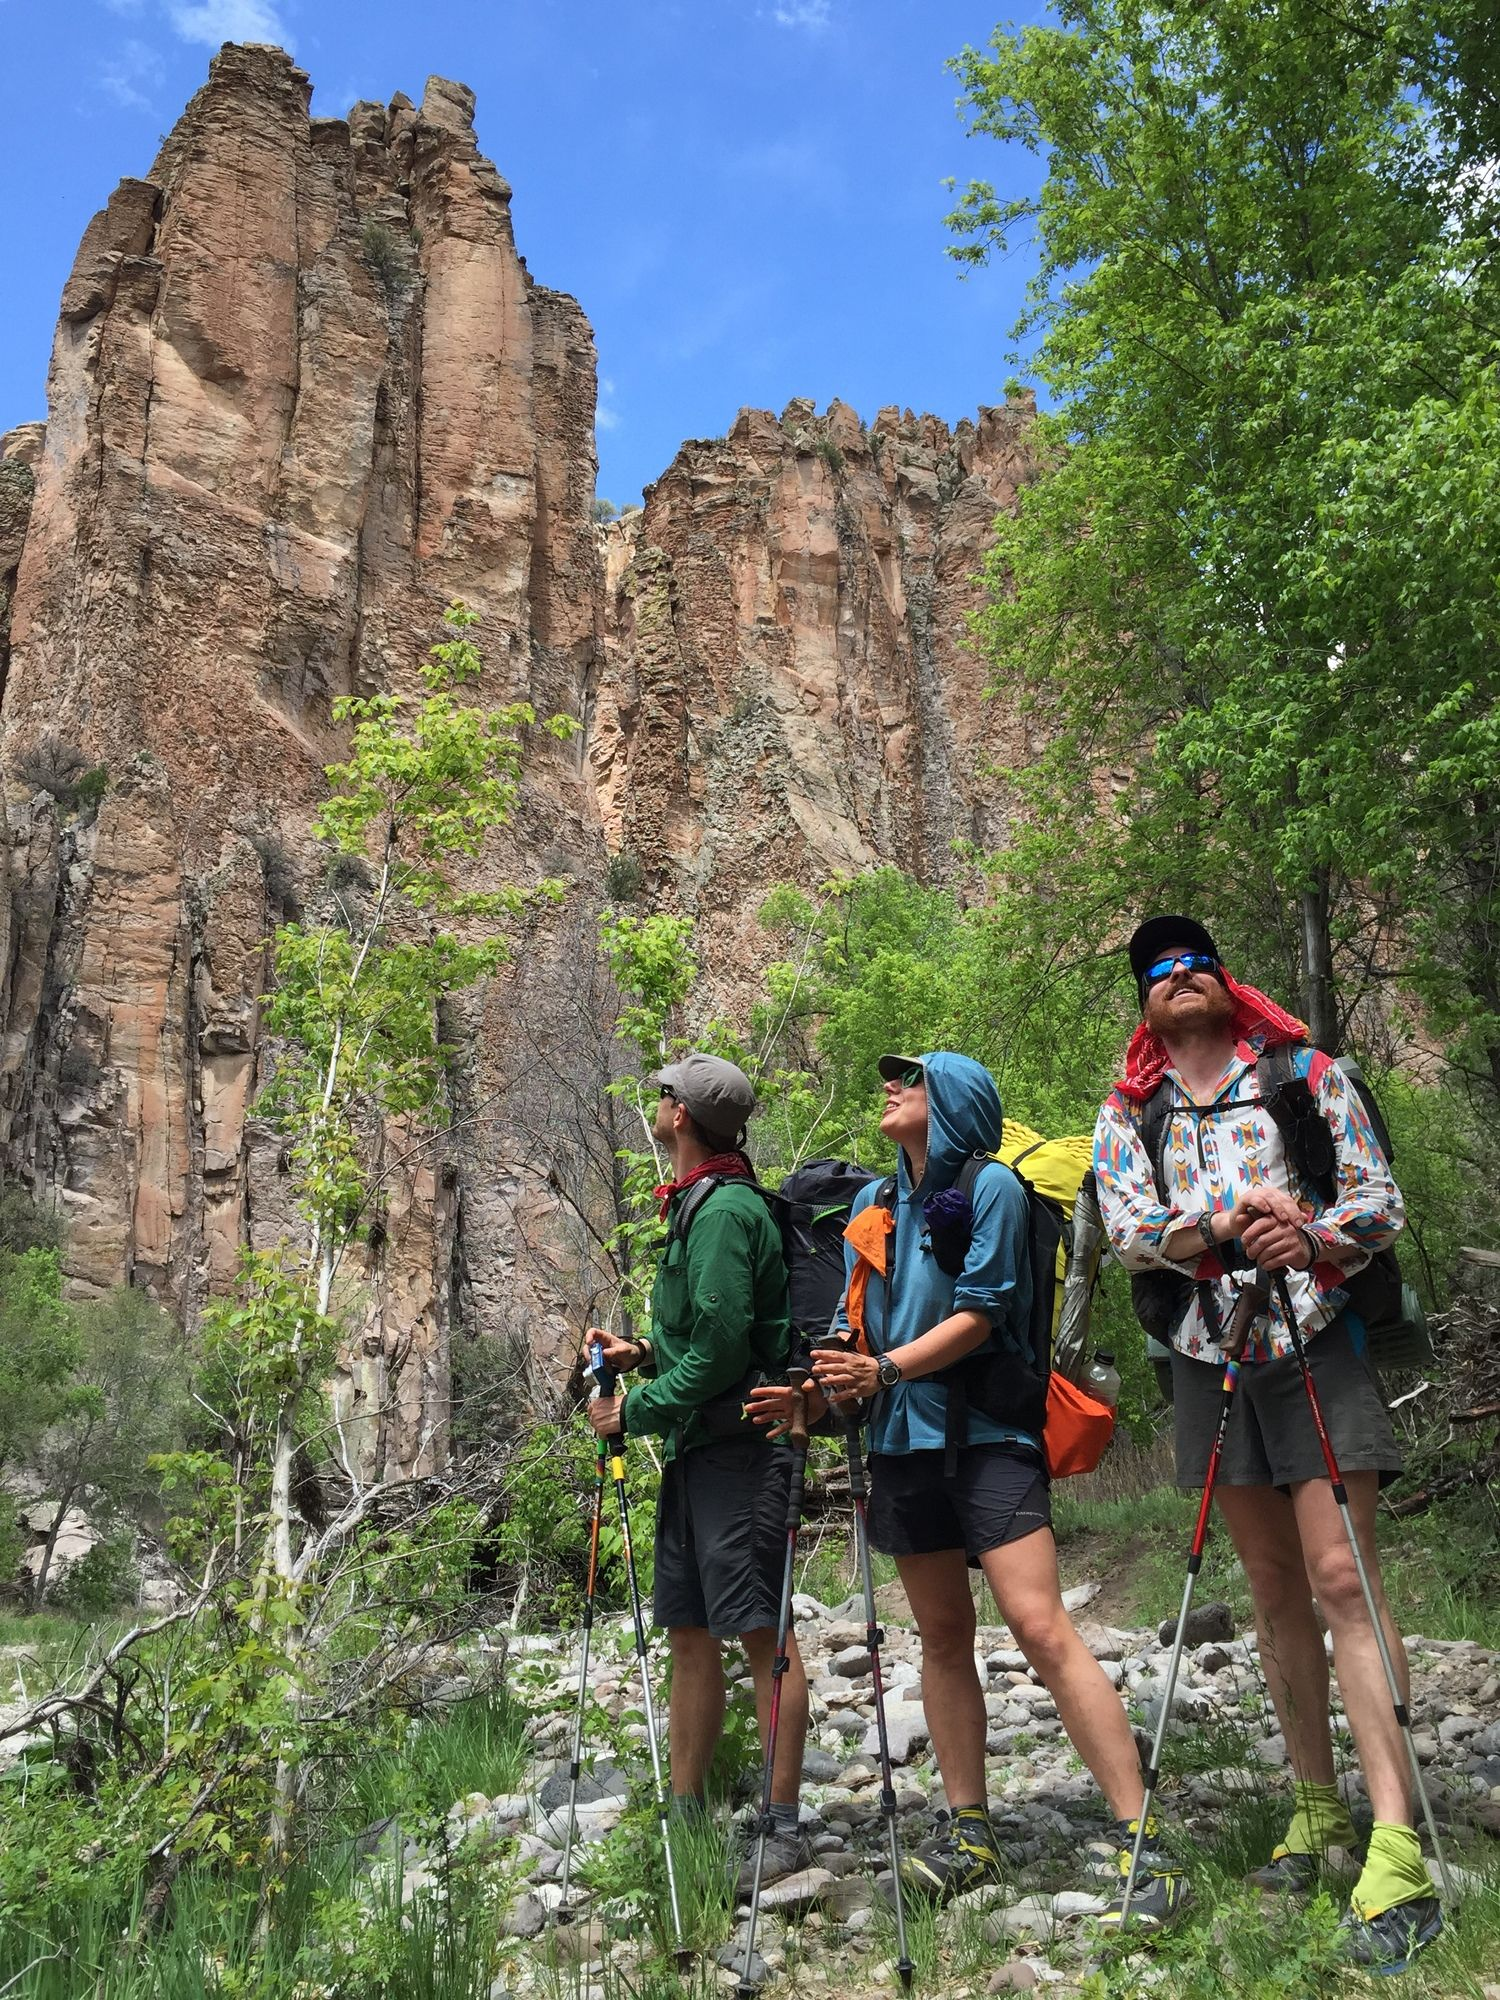 A group of hikers all using trekking poles in a canyon.